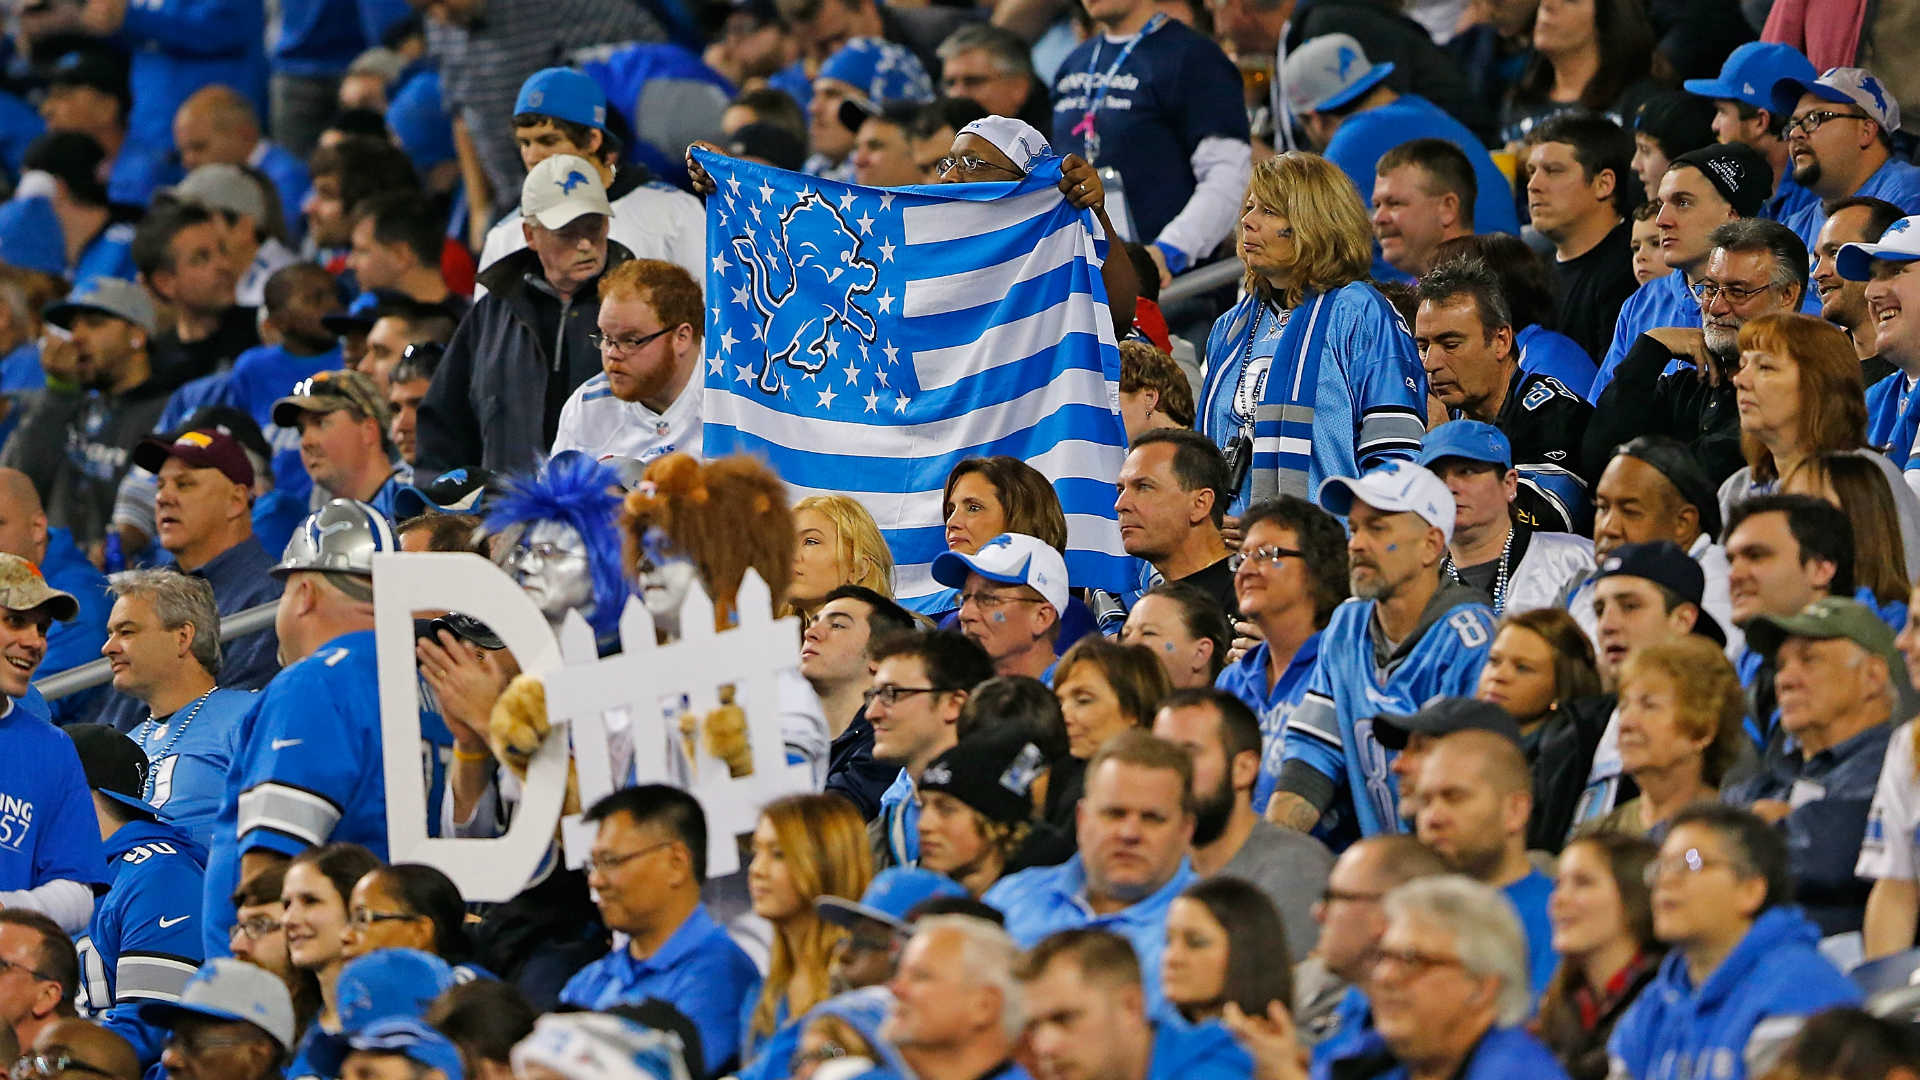 Man loses Detroit Lions season tickets after making racist post